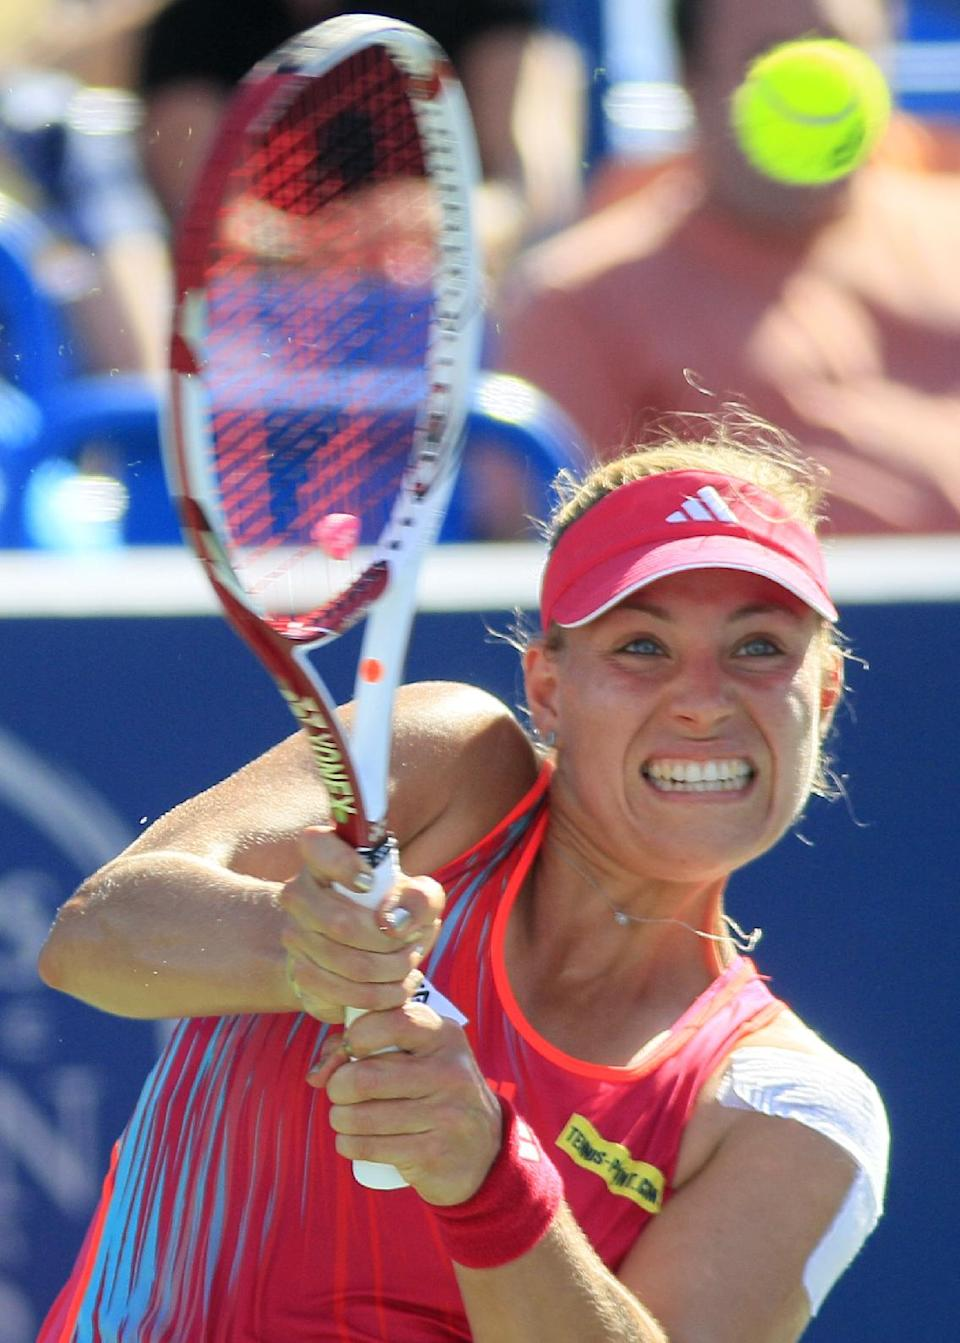 Angelique Kerber, from Germany, hits a shot against Serena Williams during a quarterfinal at the Western & Southern Open tennis tournament, Friday, Aug. 17, 2012, in Mason, Ohio. Kerber won 6-4, 6-4. (AP Photo/Al Behrman)